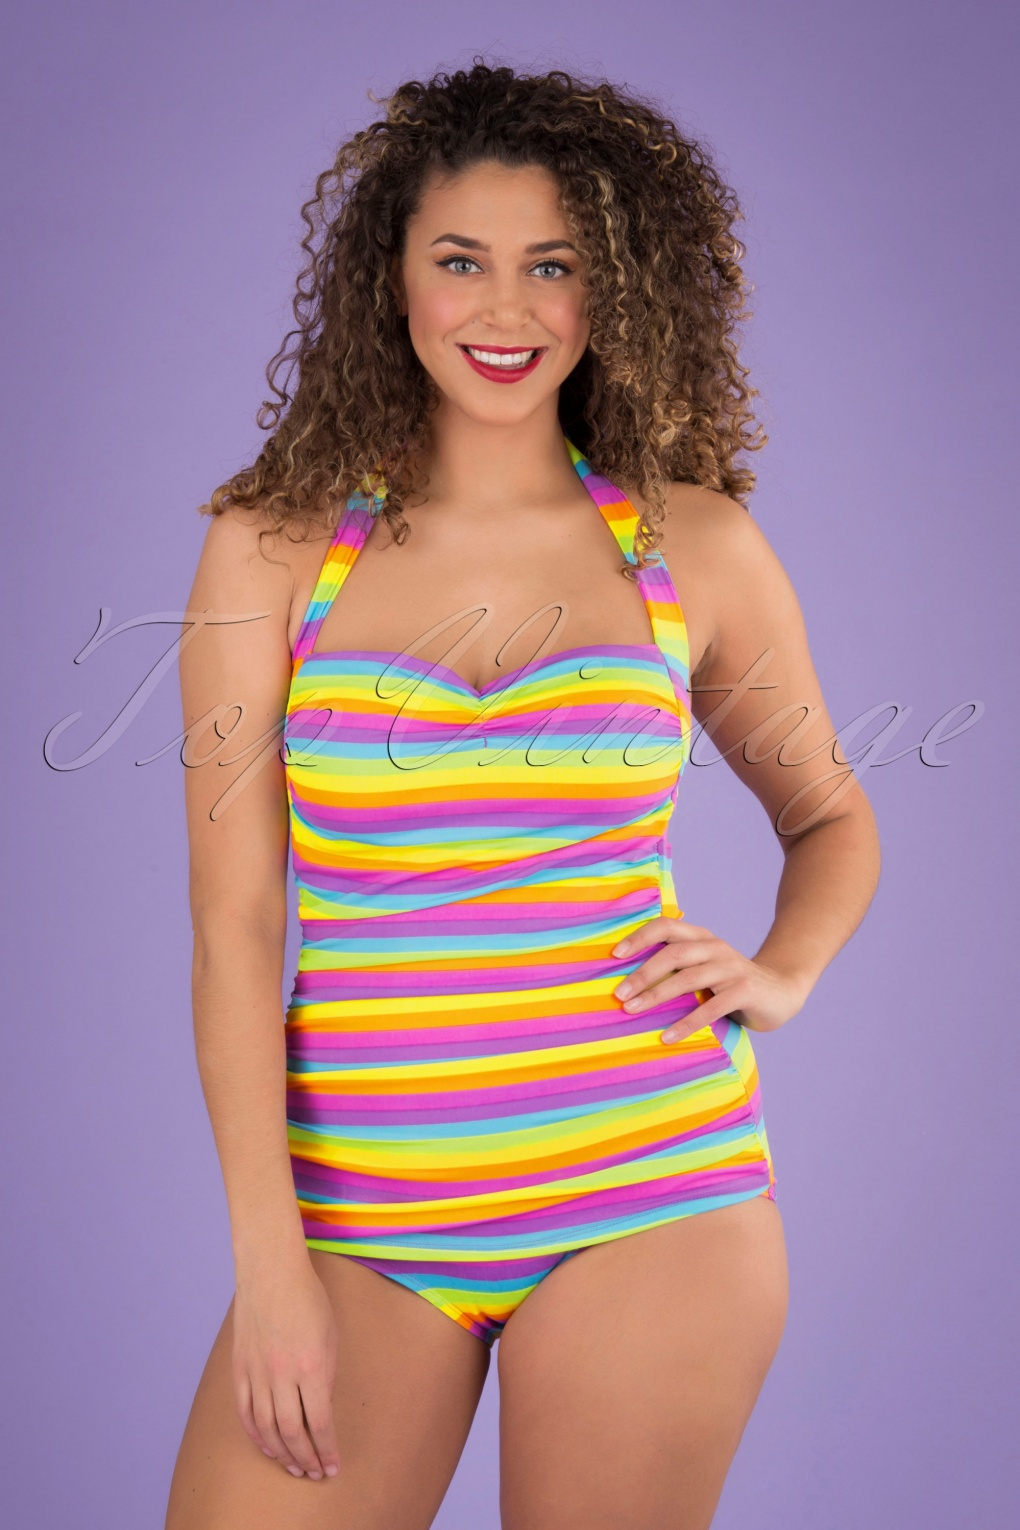 Vintage Bathing Suits | Retro Swimwear | Vintage Swimsuits 50s Iris Frock One Piece Swimsuit in Multi £90.53 AT vintagedancer.com